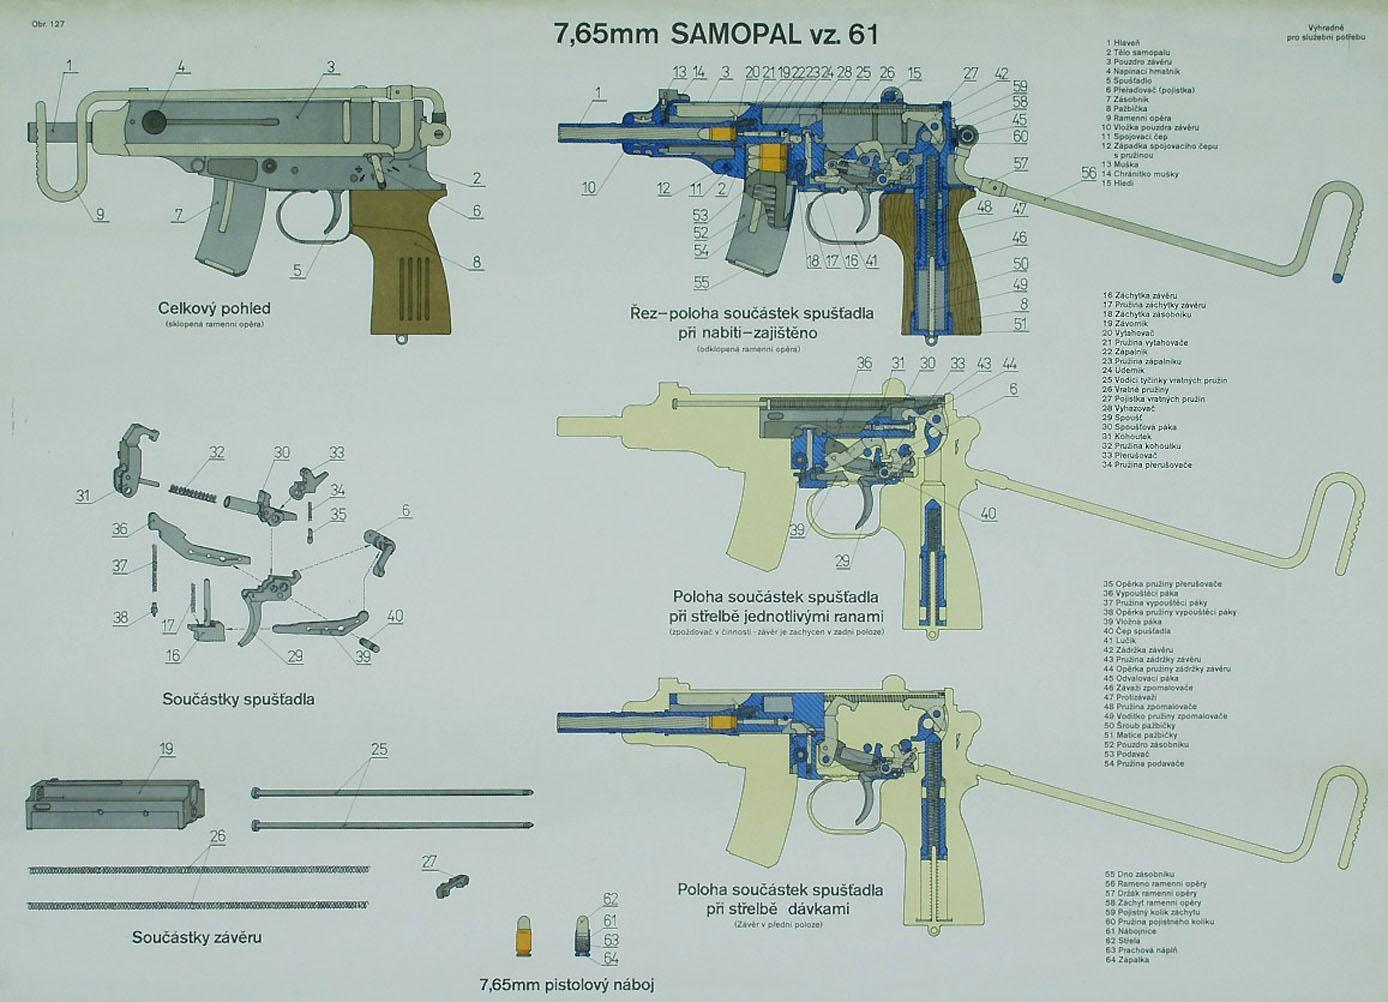 Schematic view of the SAMOPAL Vz. 61 Skorpion